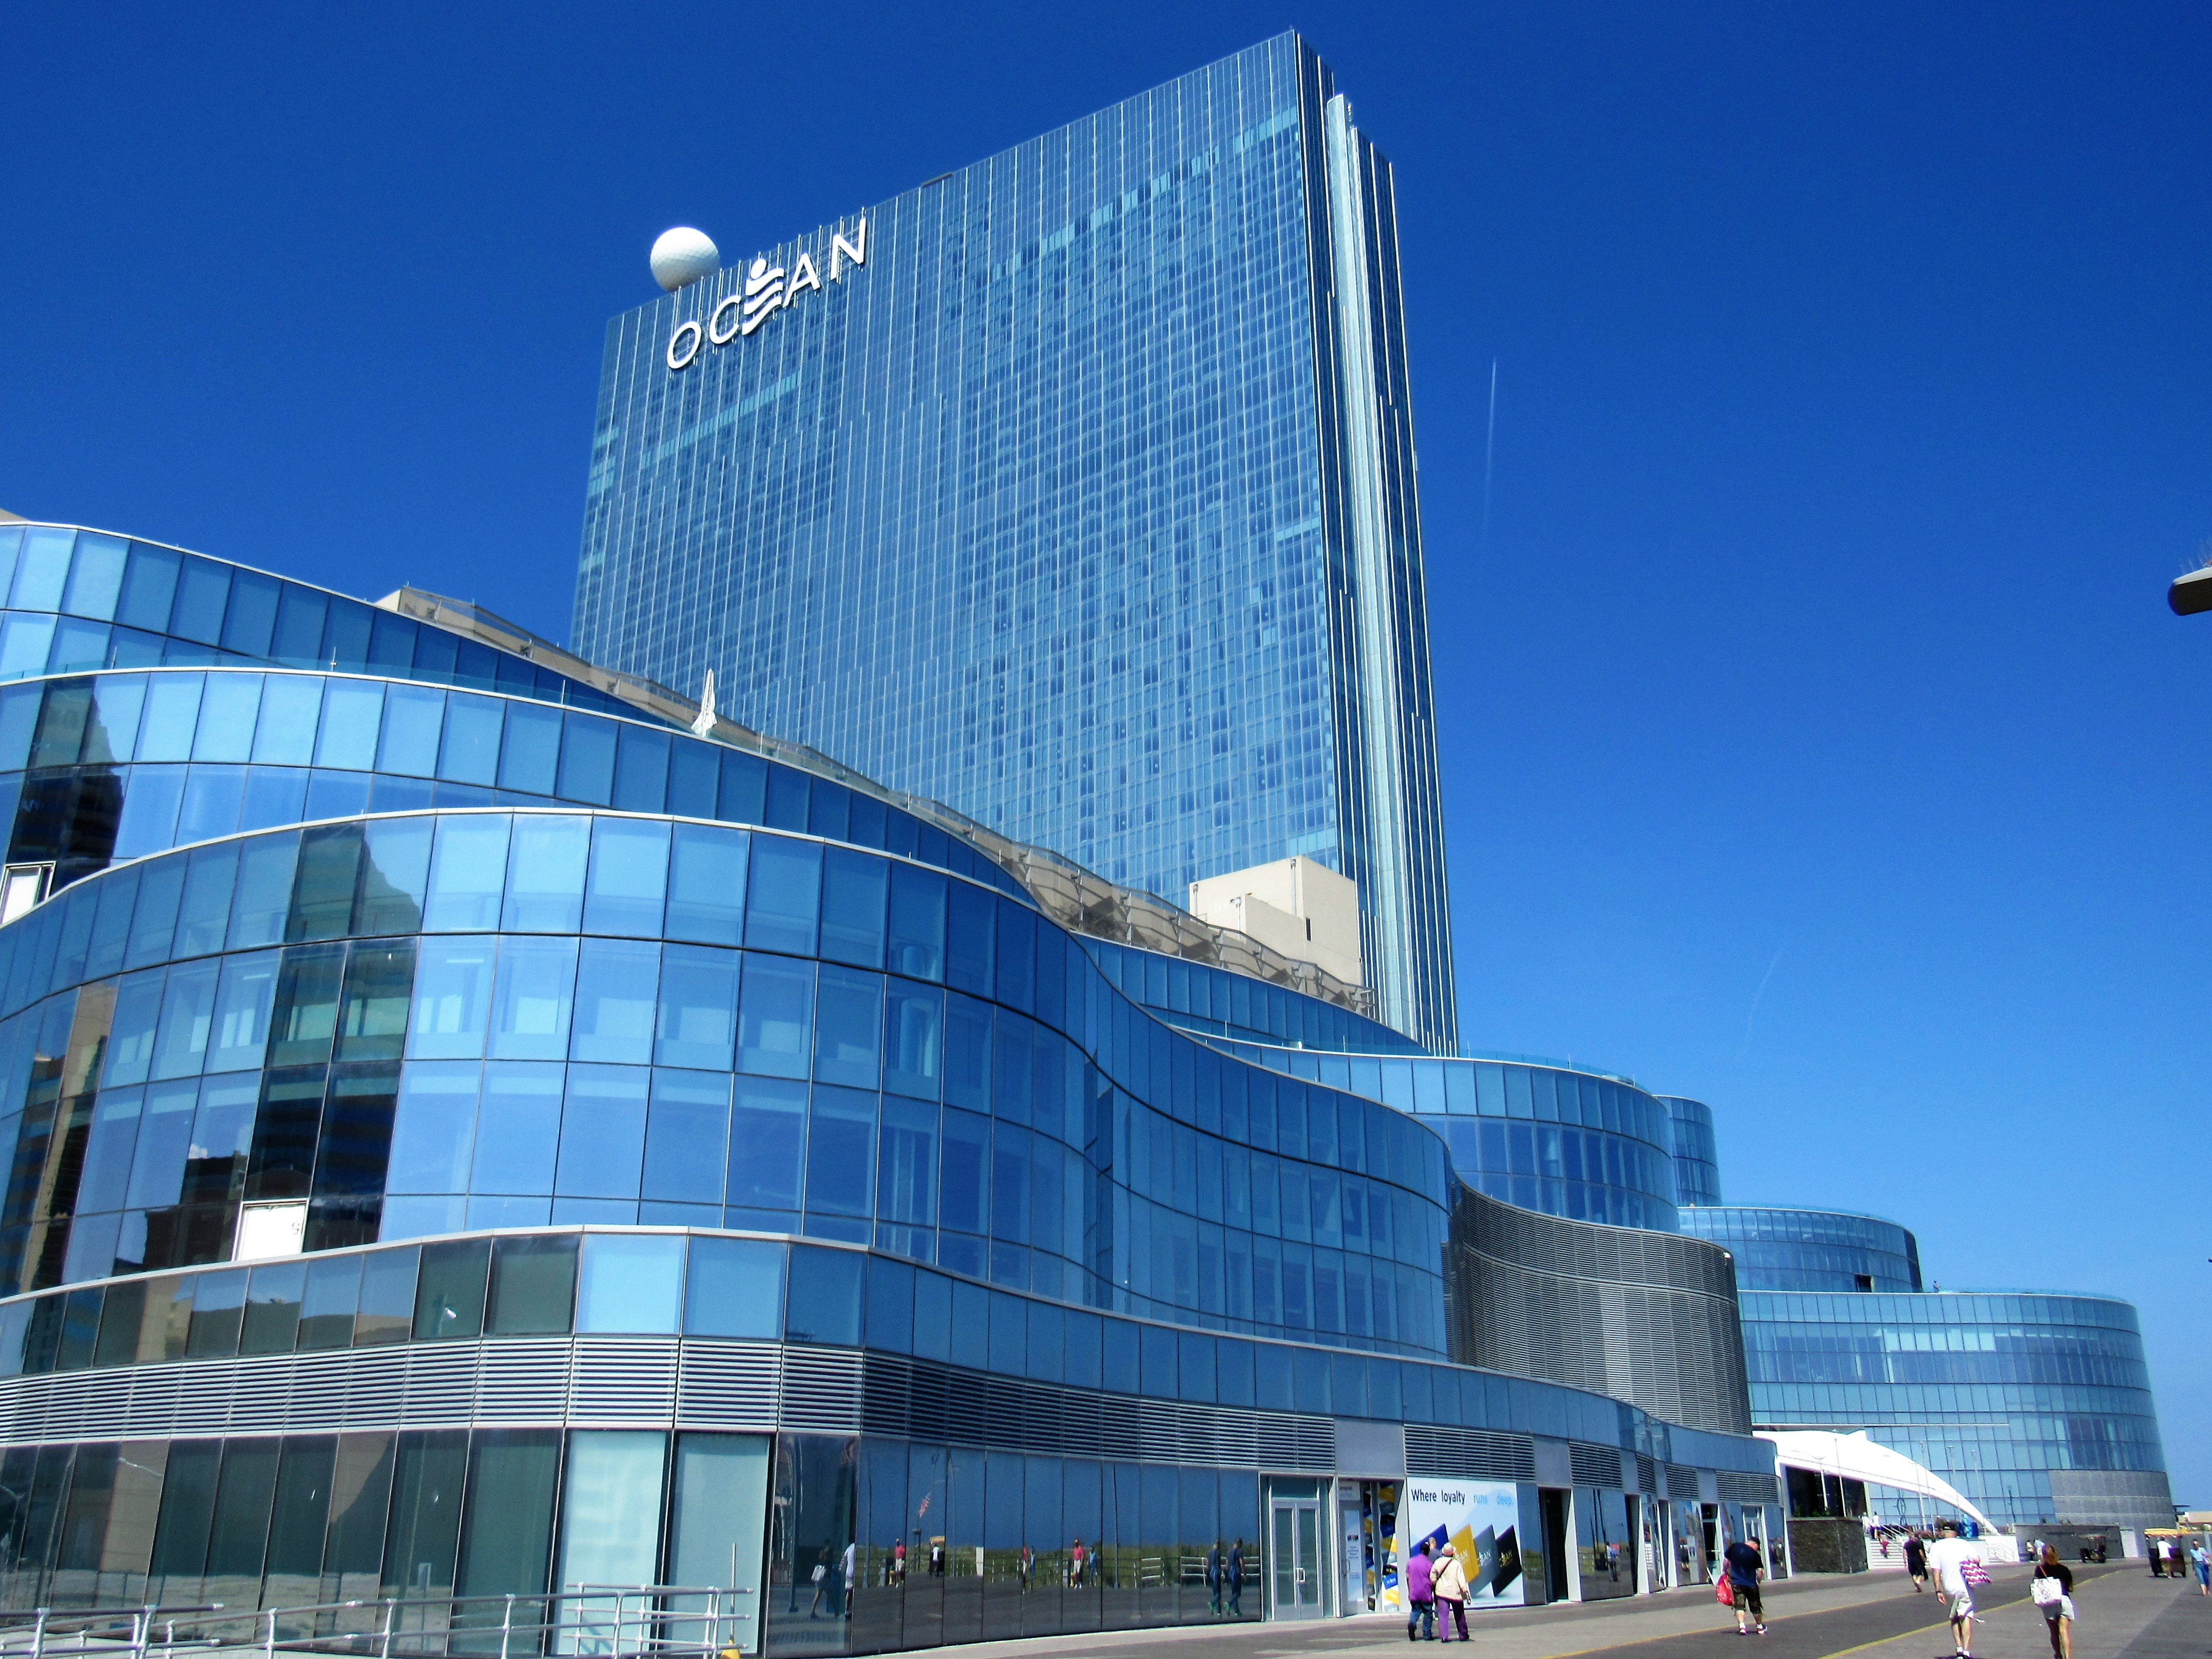 Ocean Resort Casino - Atlantic City